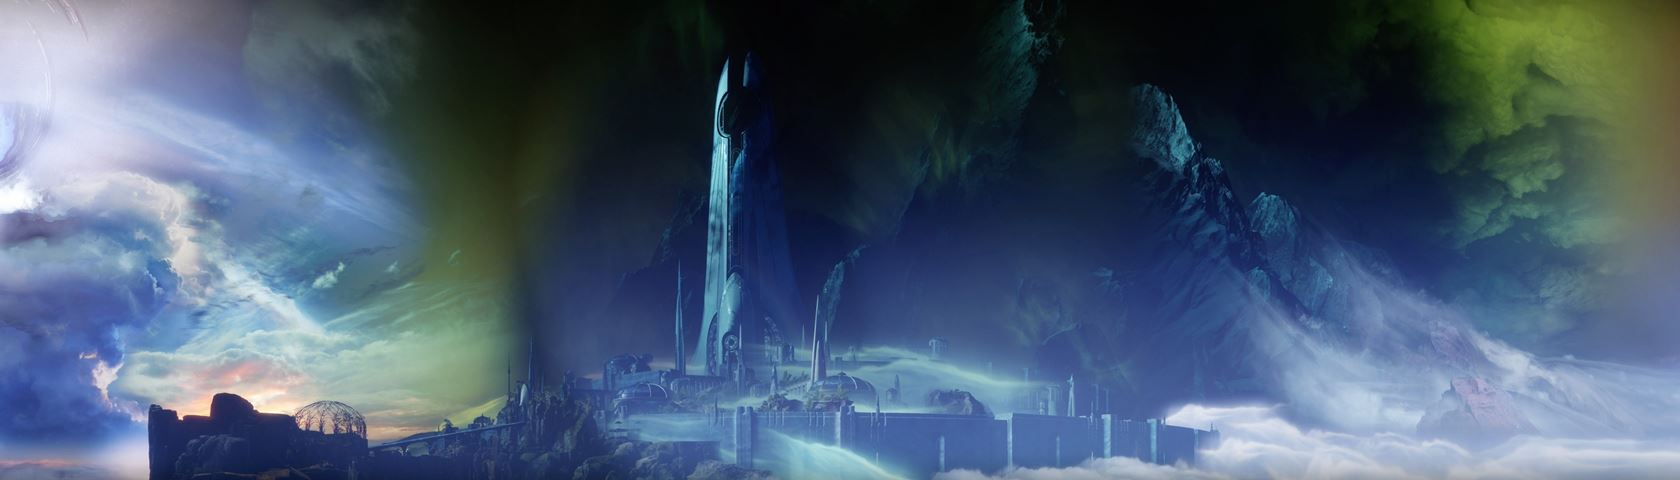 Dreaming City Images Wallpaperfusion By Binary Fortress Software